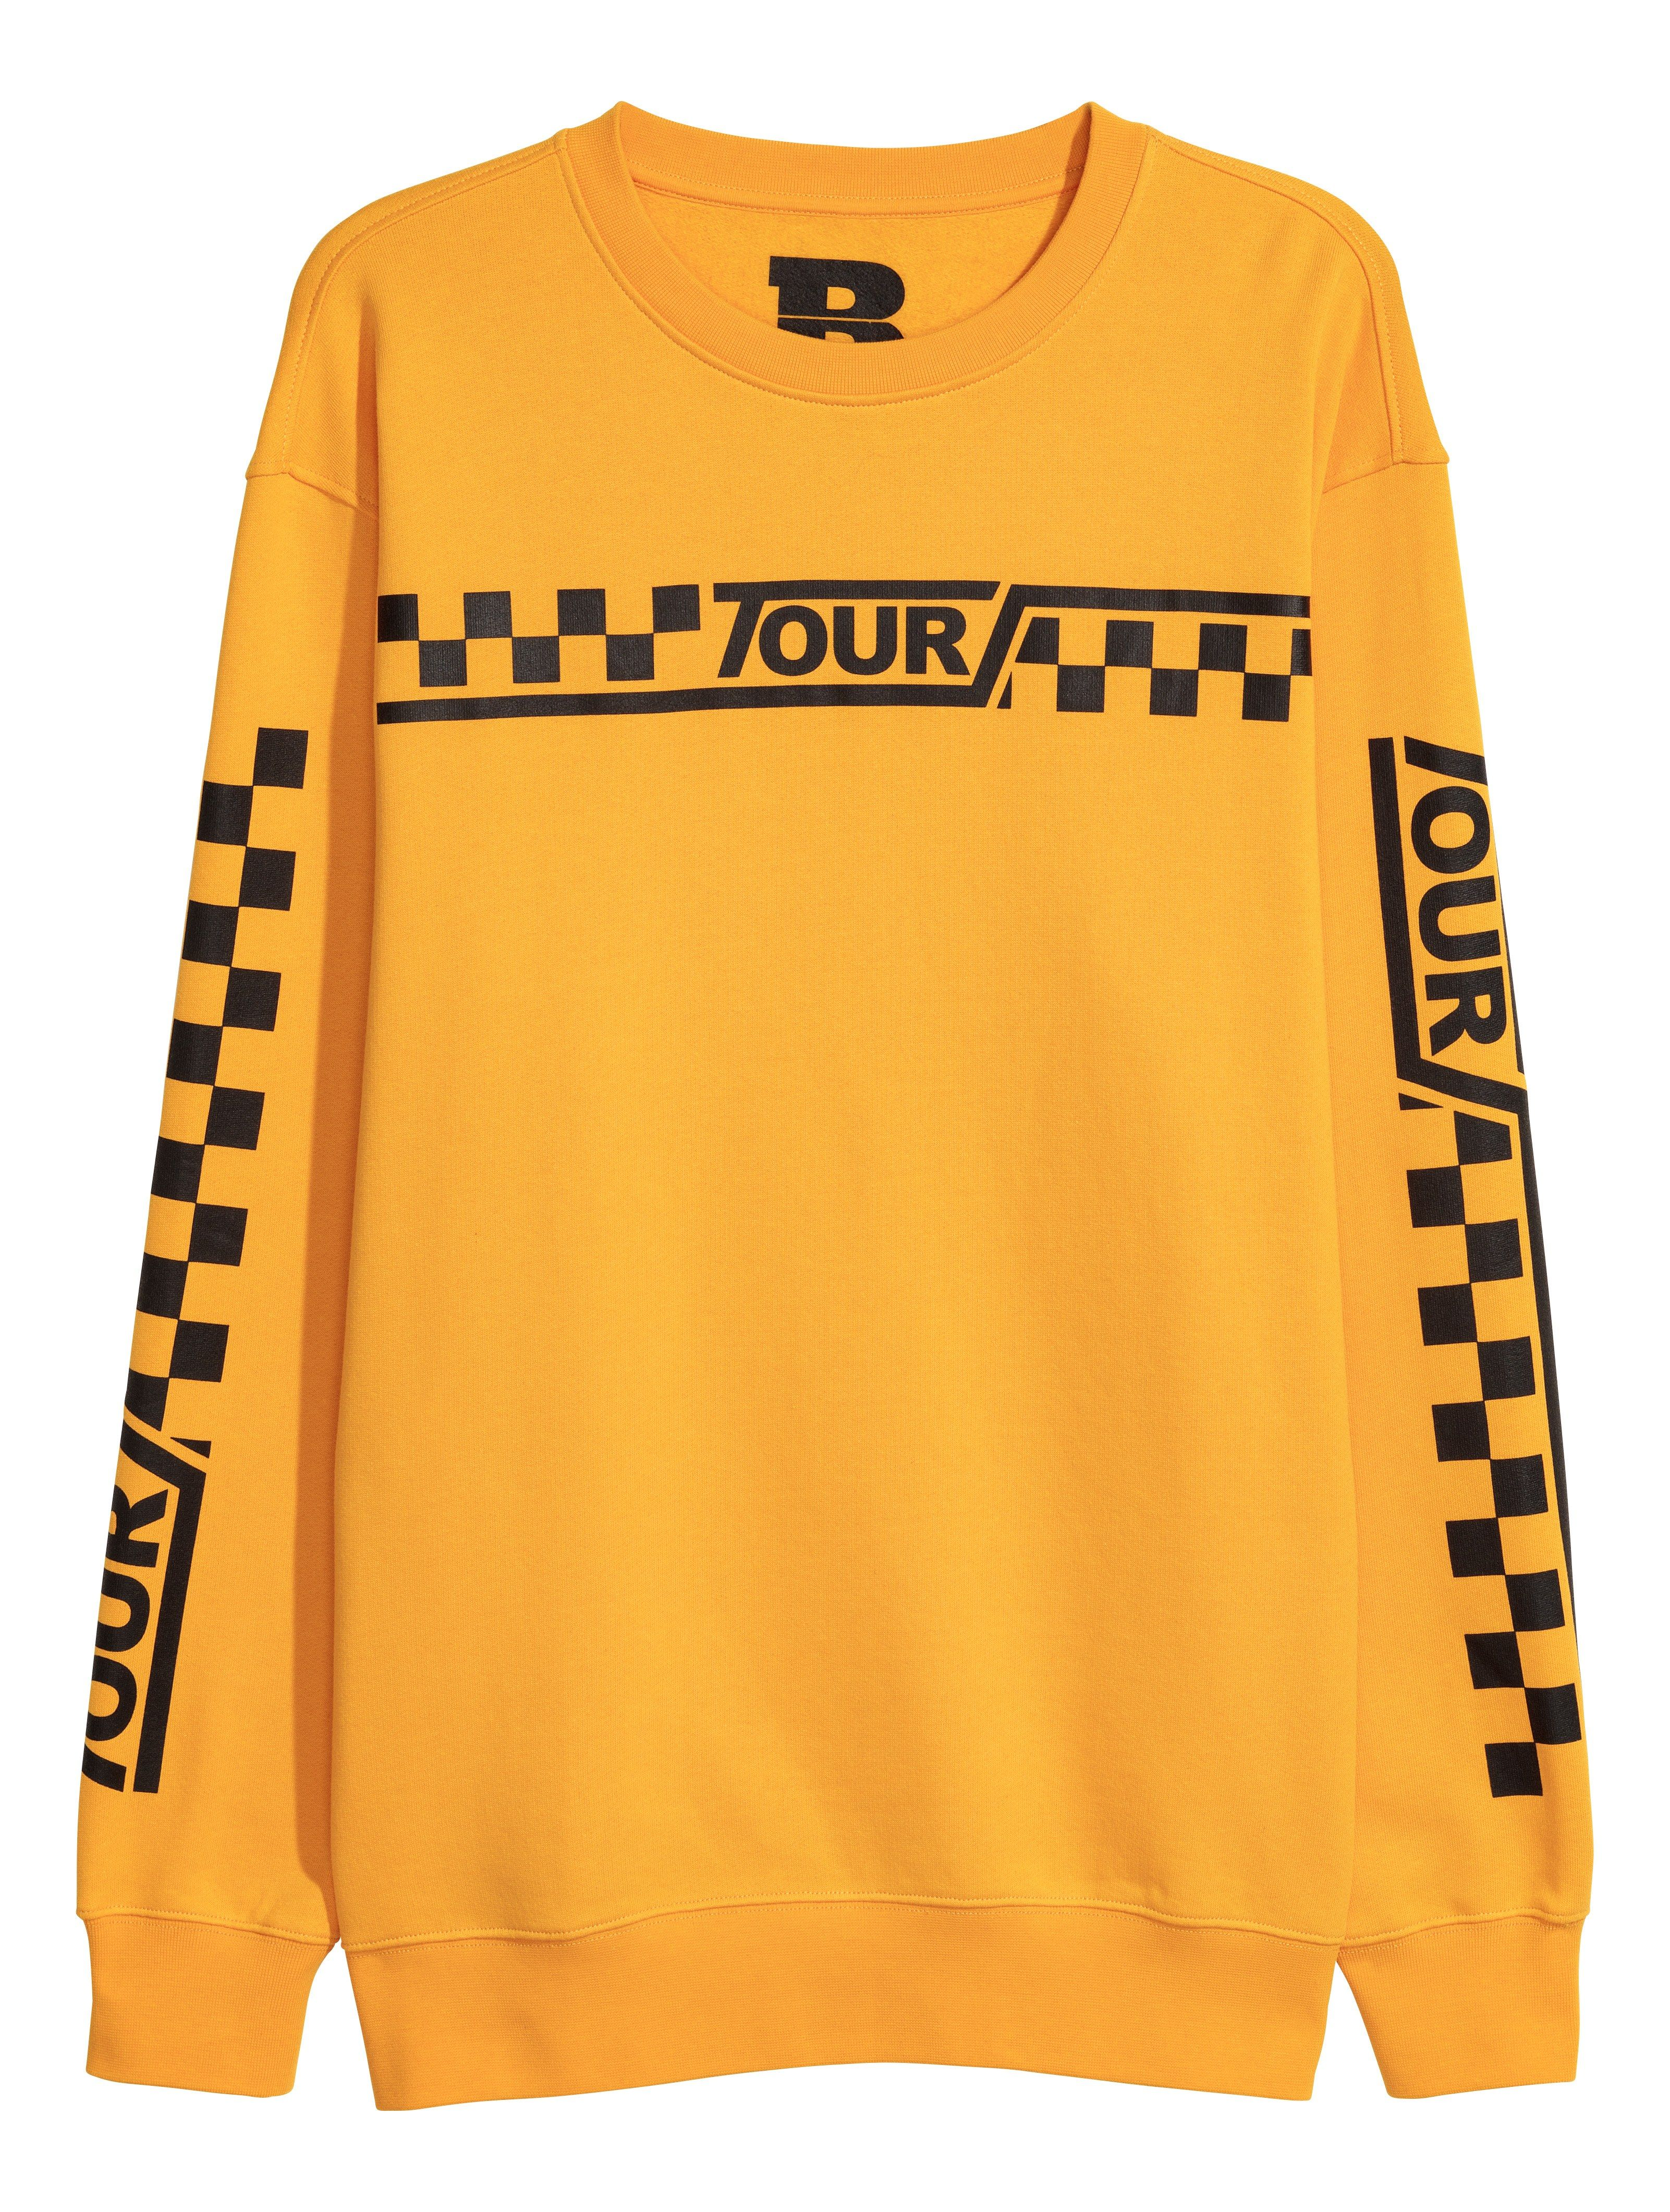 4a6ddcfdd91dc Justin Bieber Launched NEW Purpose Tour Merch — Even Though the Tour ...